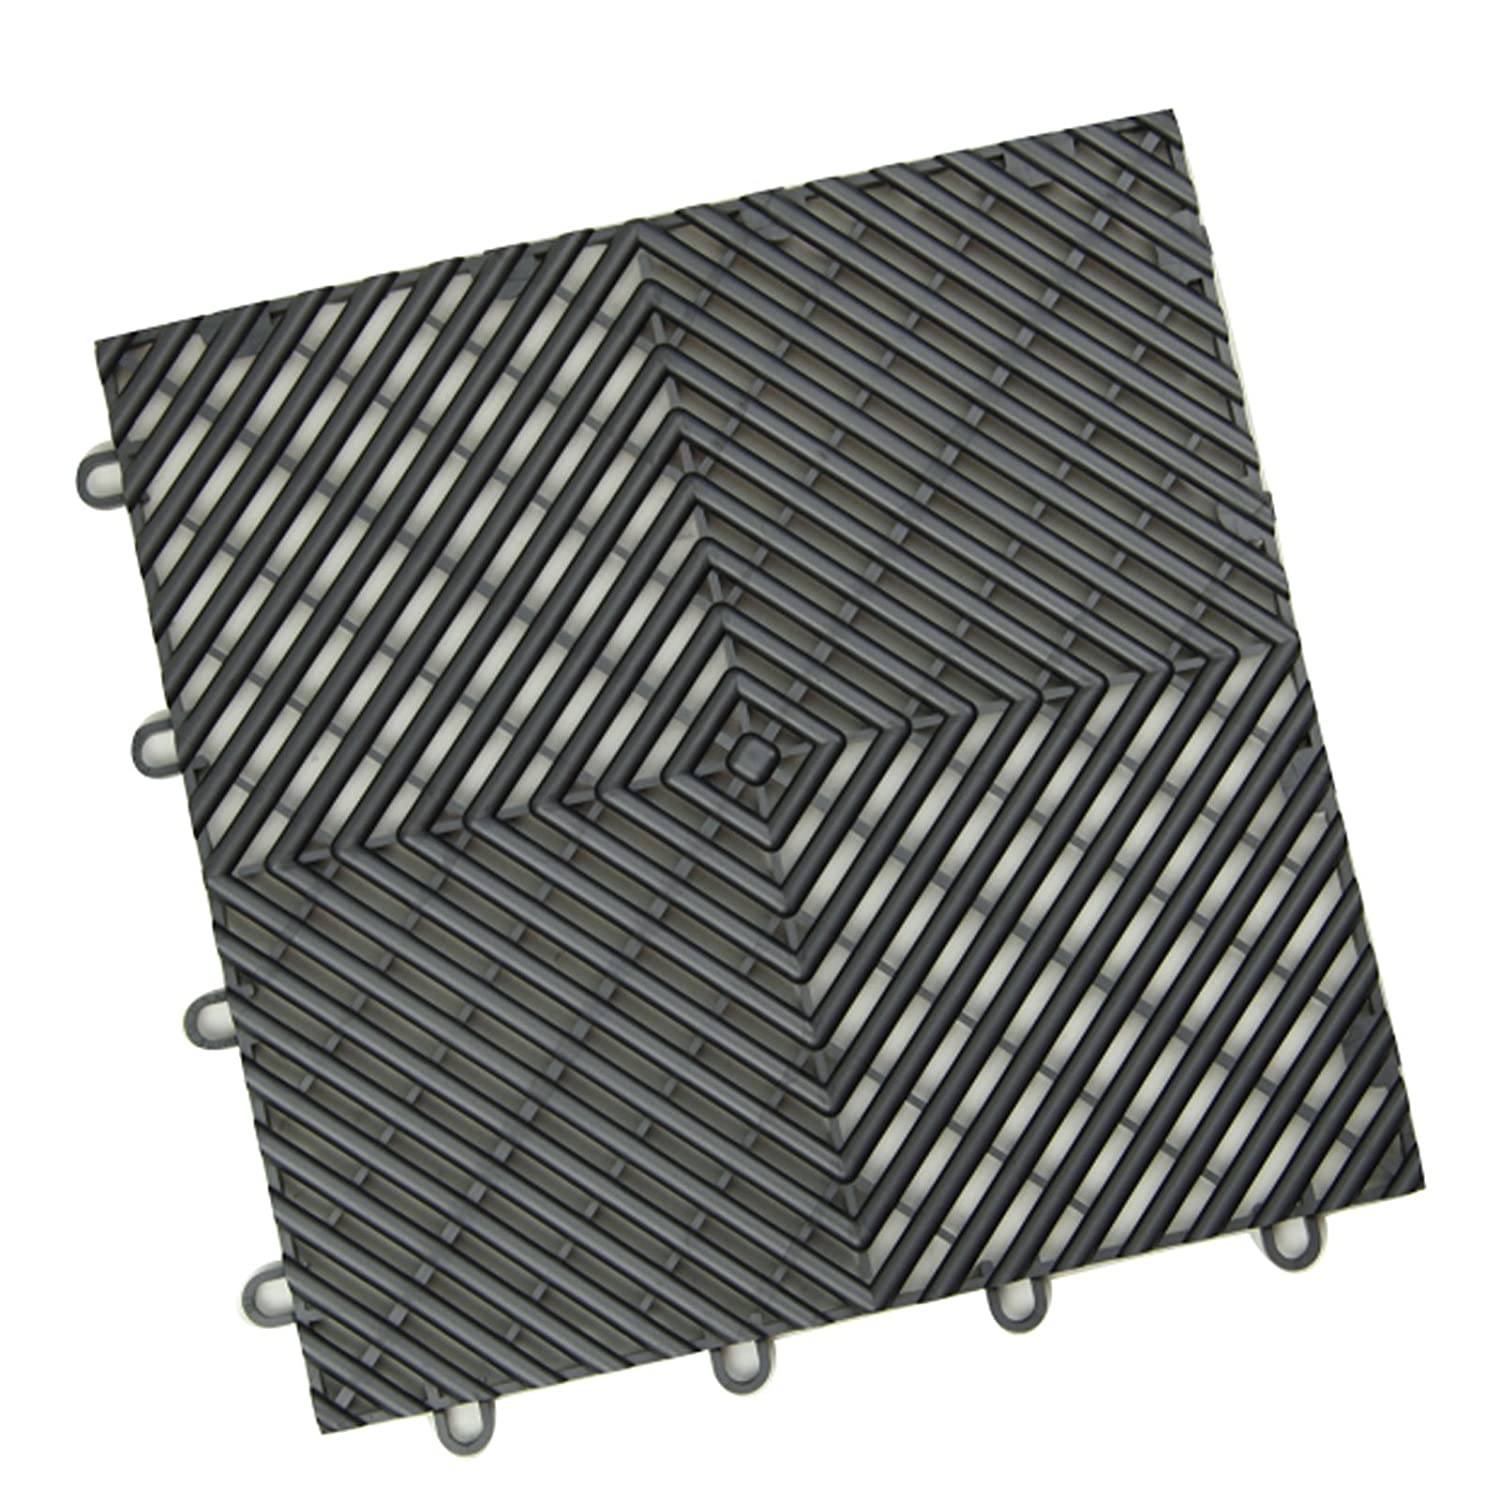 IncStores Vented Grid-Loc Garage Flooring Snap Together Mat Drainage Tiles